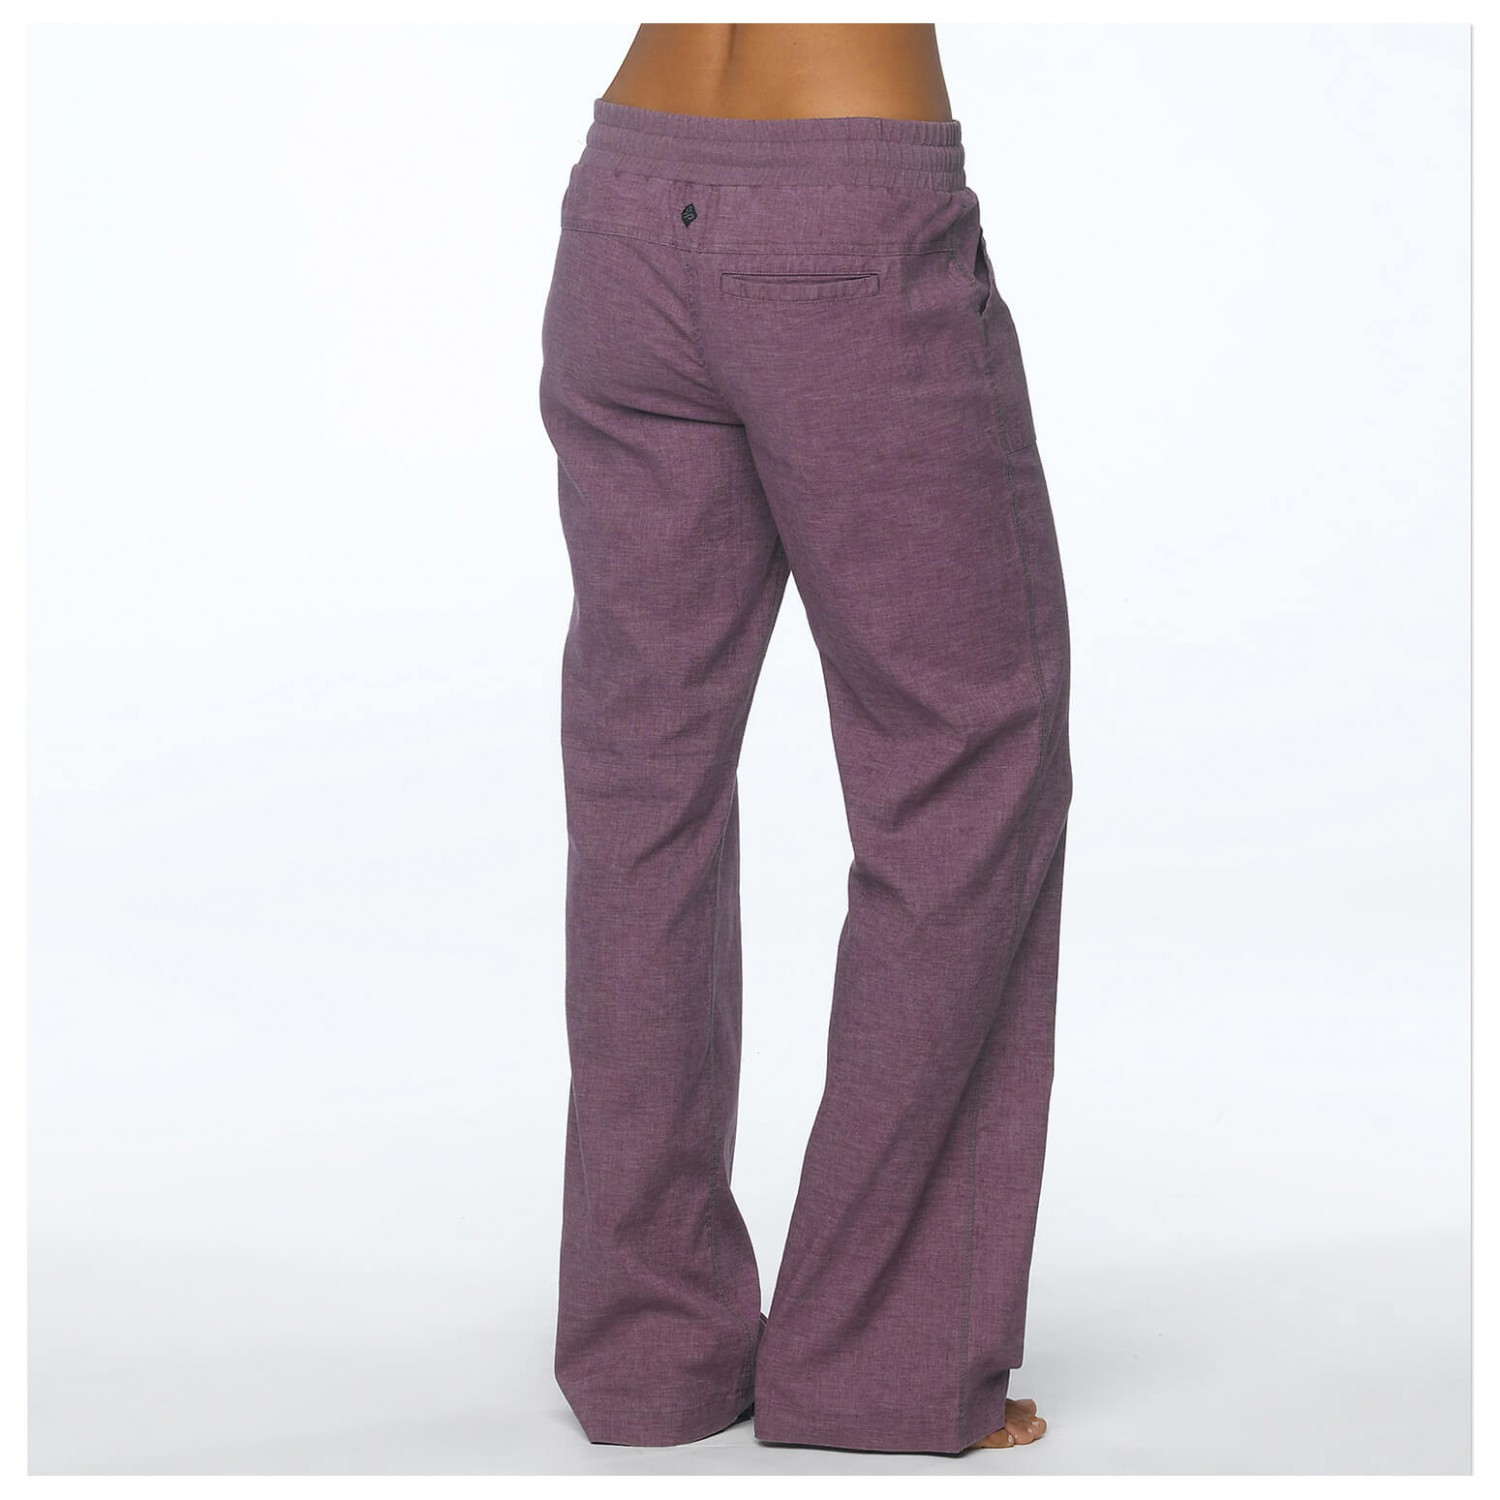 Prana Mantra Pant Yoga Pants Women S Buy Online